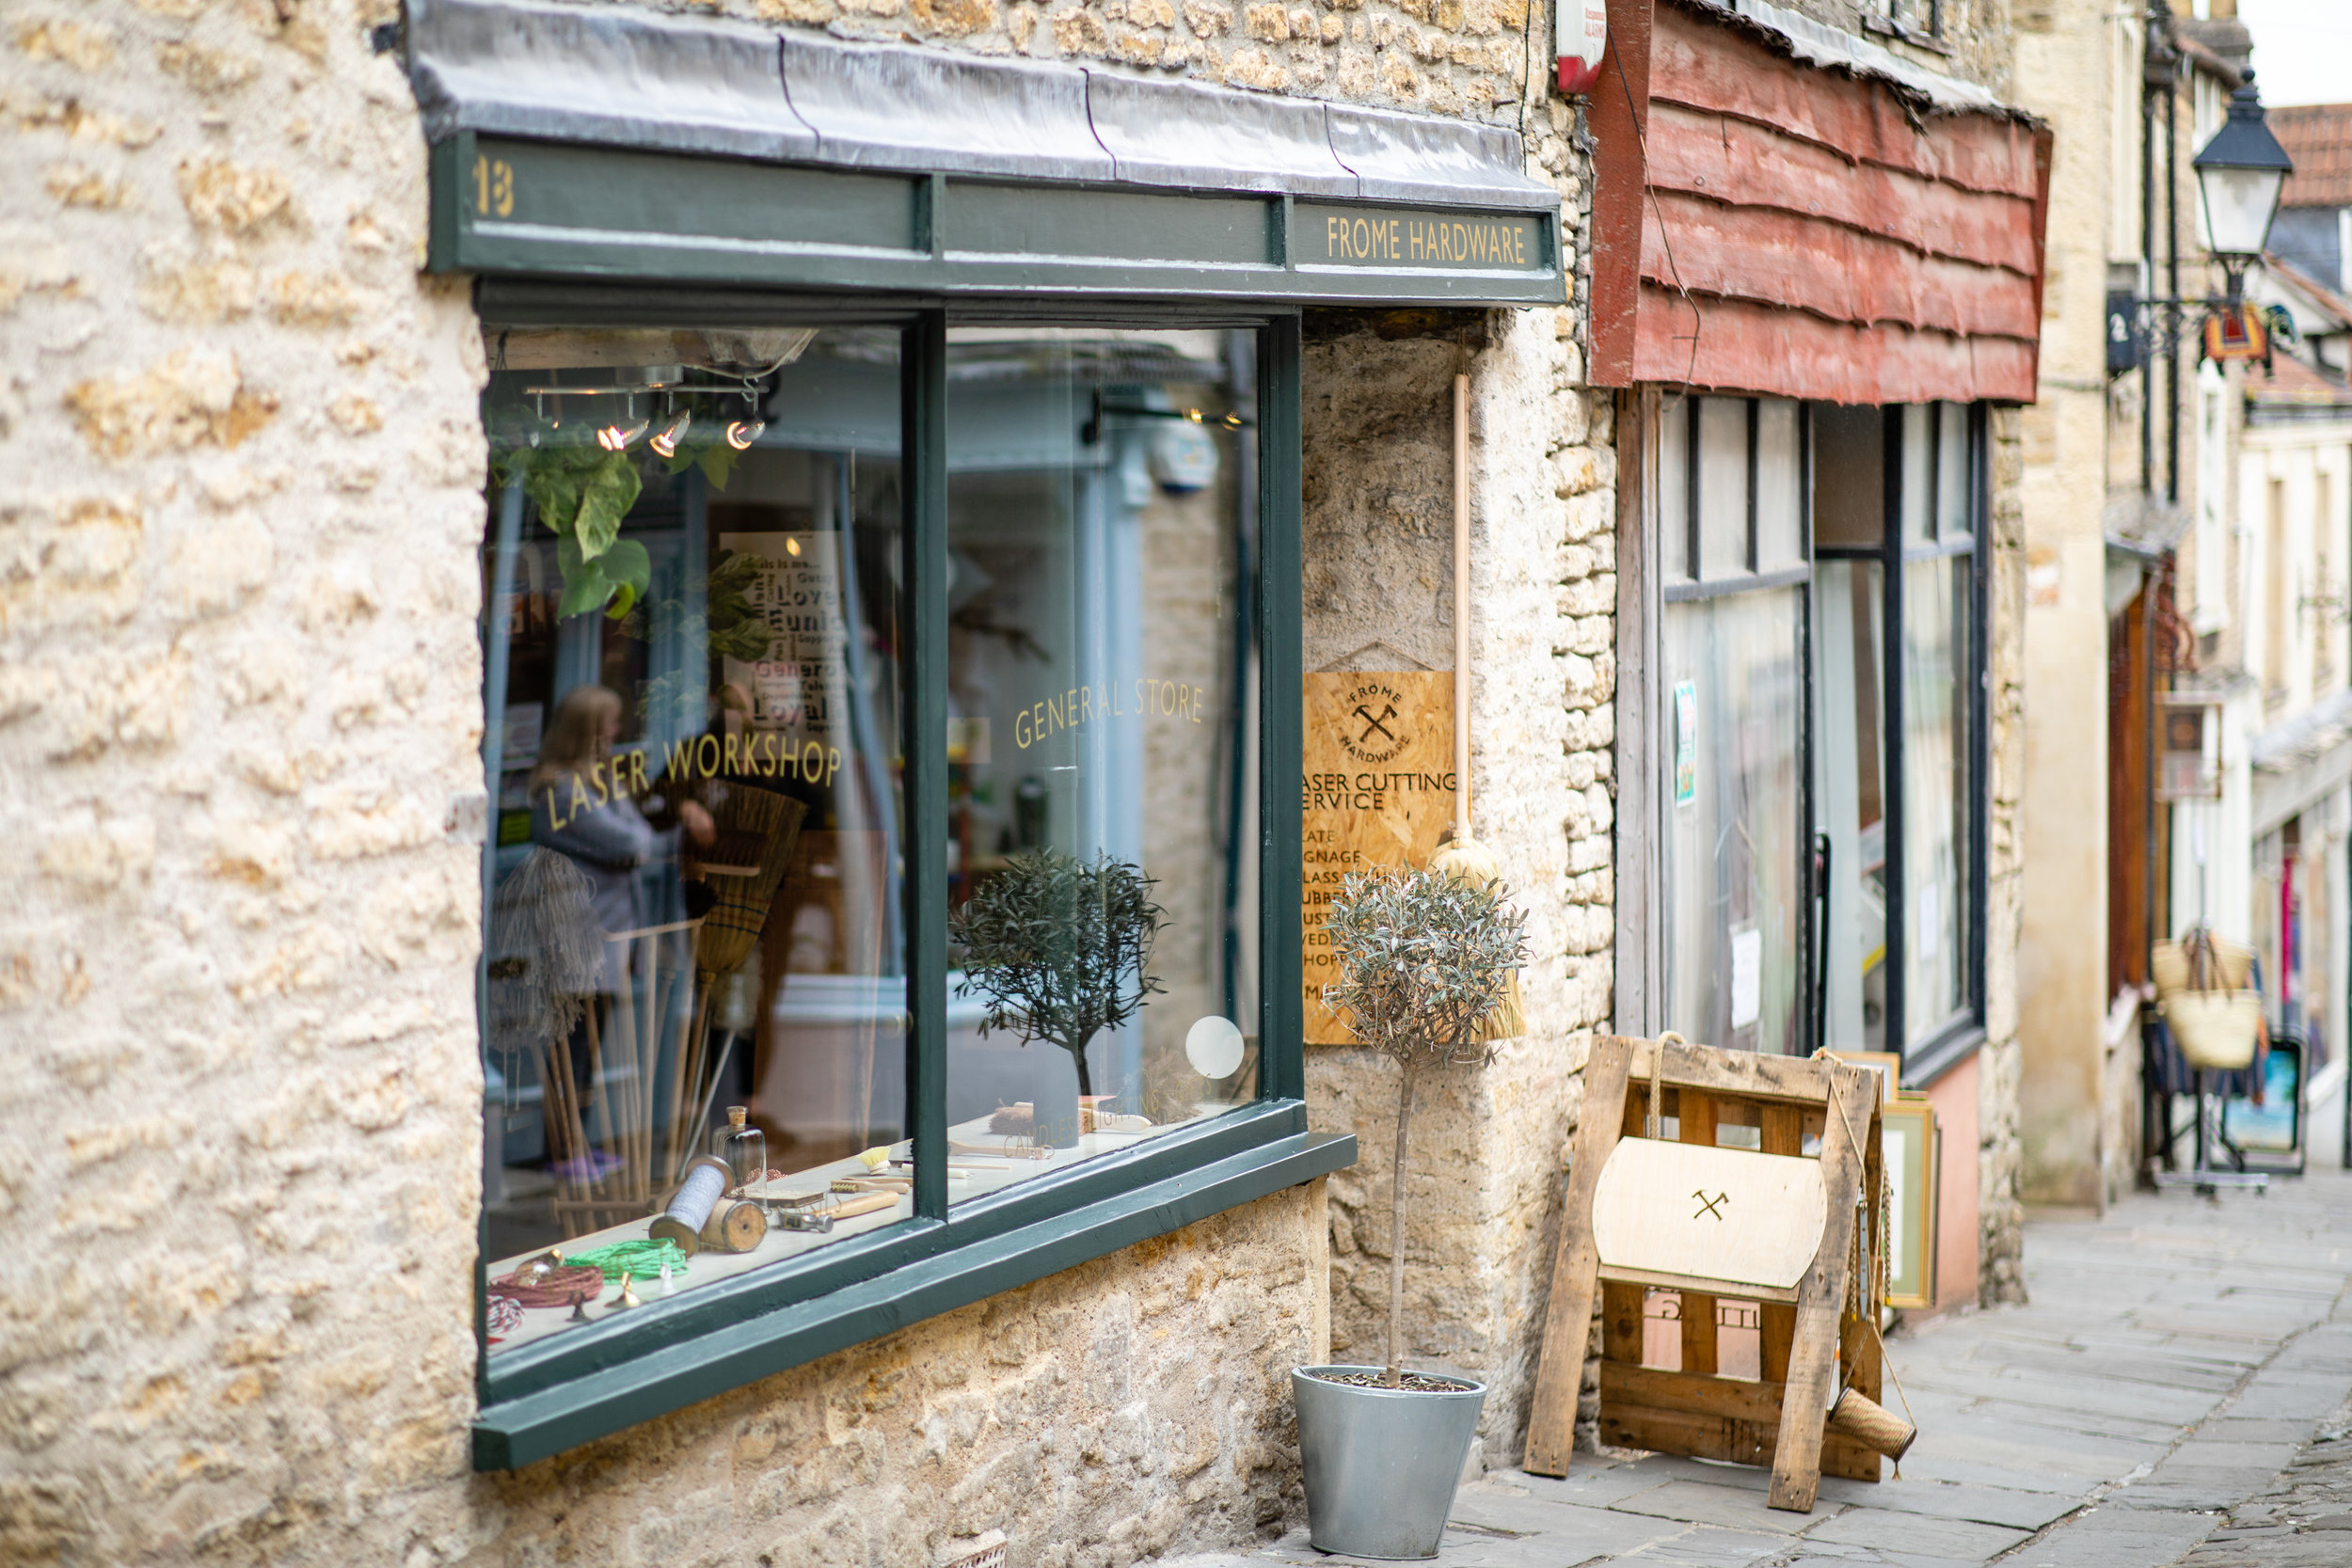 We will visit 3 gorgeous independent stores to meet the owners & shop -  Kobi & Teal ,  Frome Hardware  and  Resident